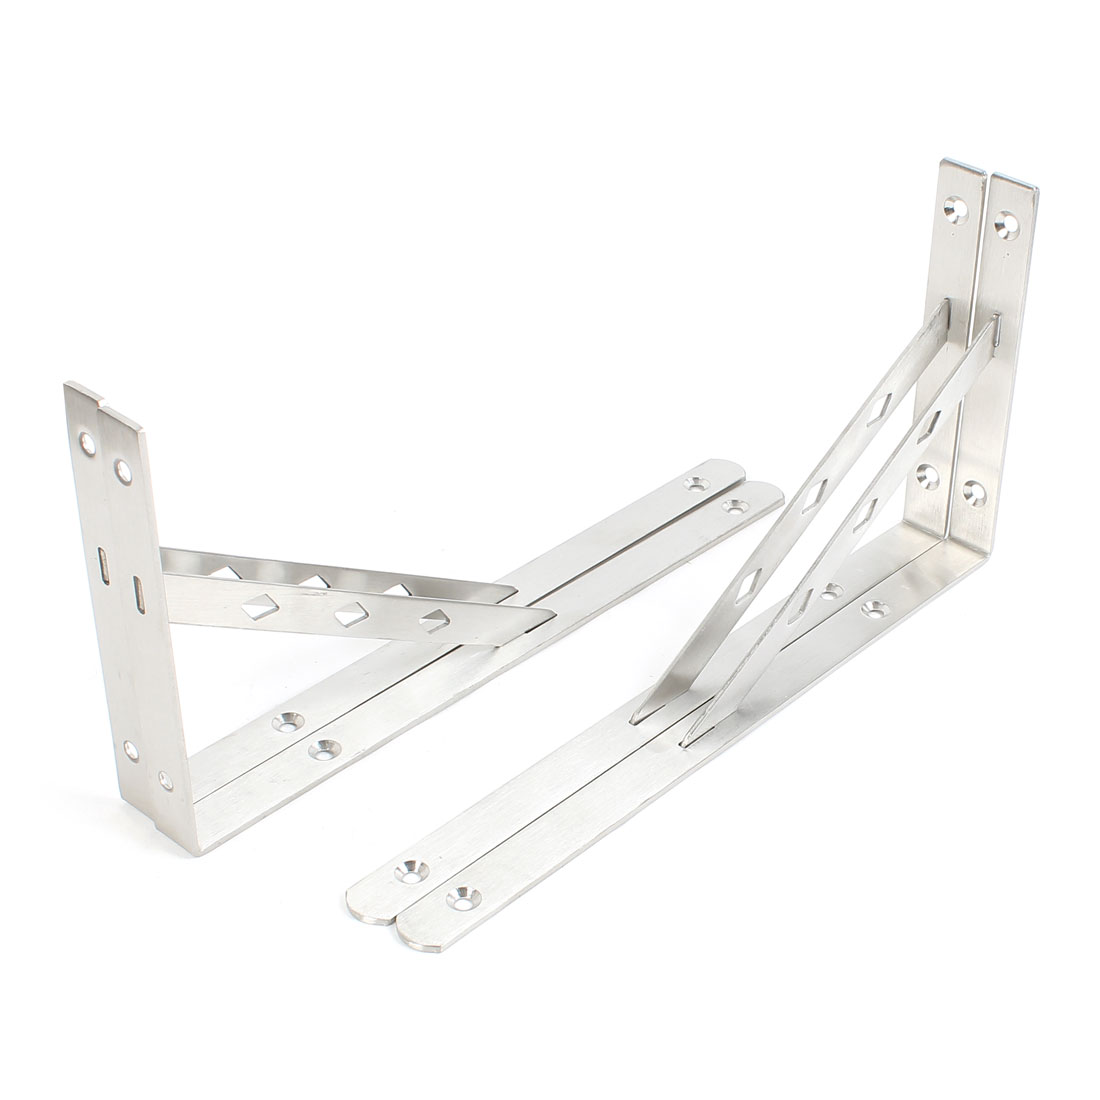 4 Pcs 30cx15.5cm Silver Tone Right Angle Book Goods Shelf Bracket Support